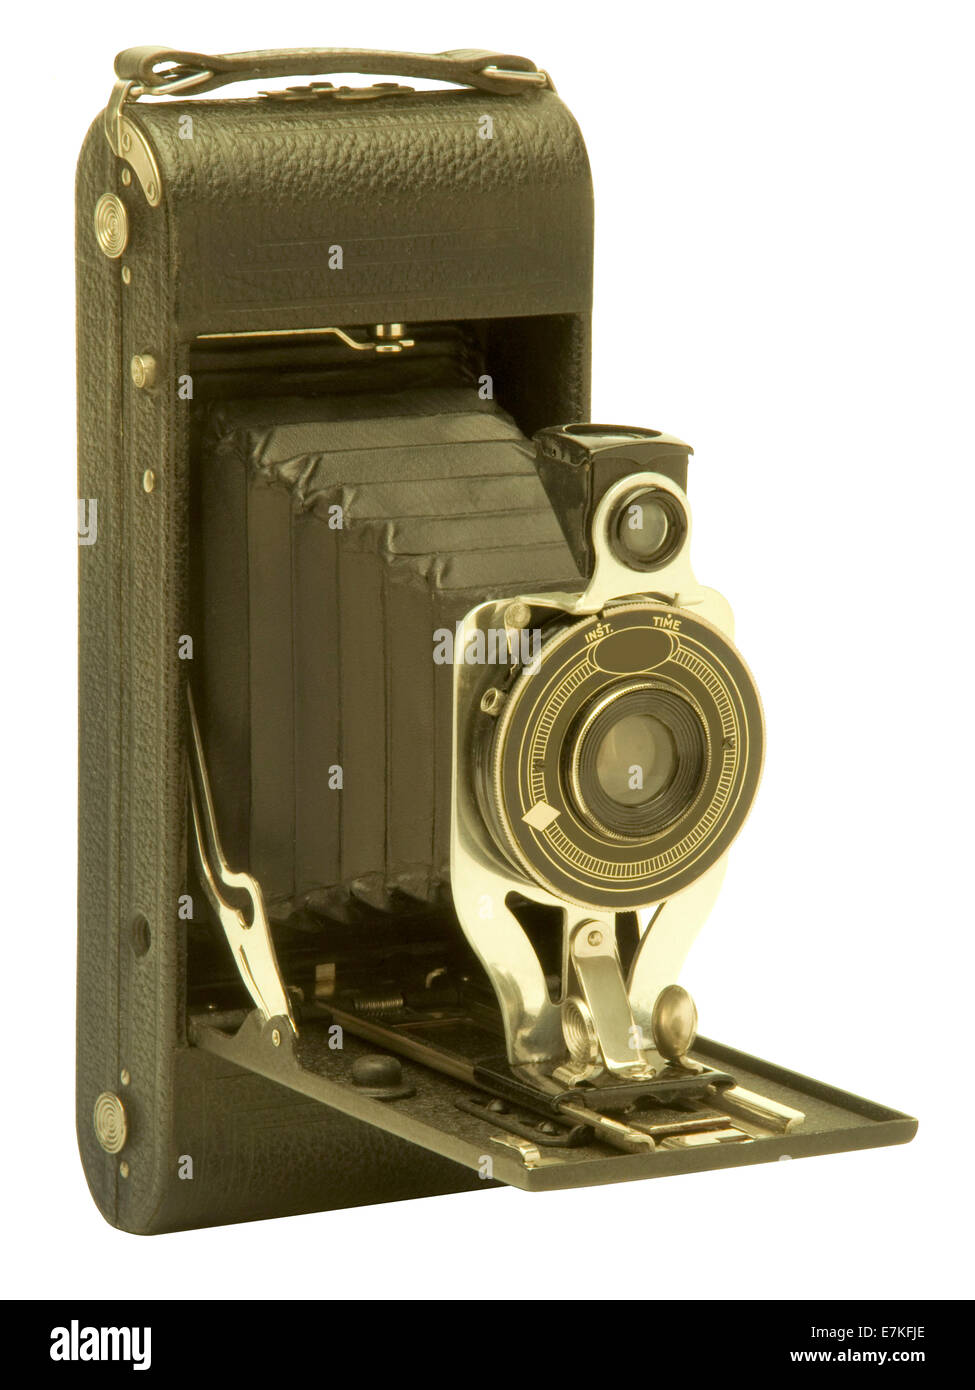 Vintage Agfa Ansco folding bellows film camera against white background. Logos have been removed to avoid trademark - Stock Image